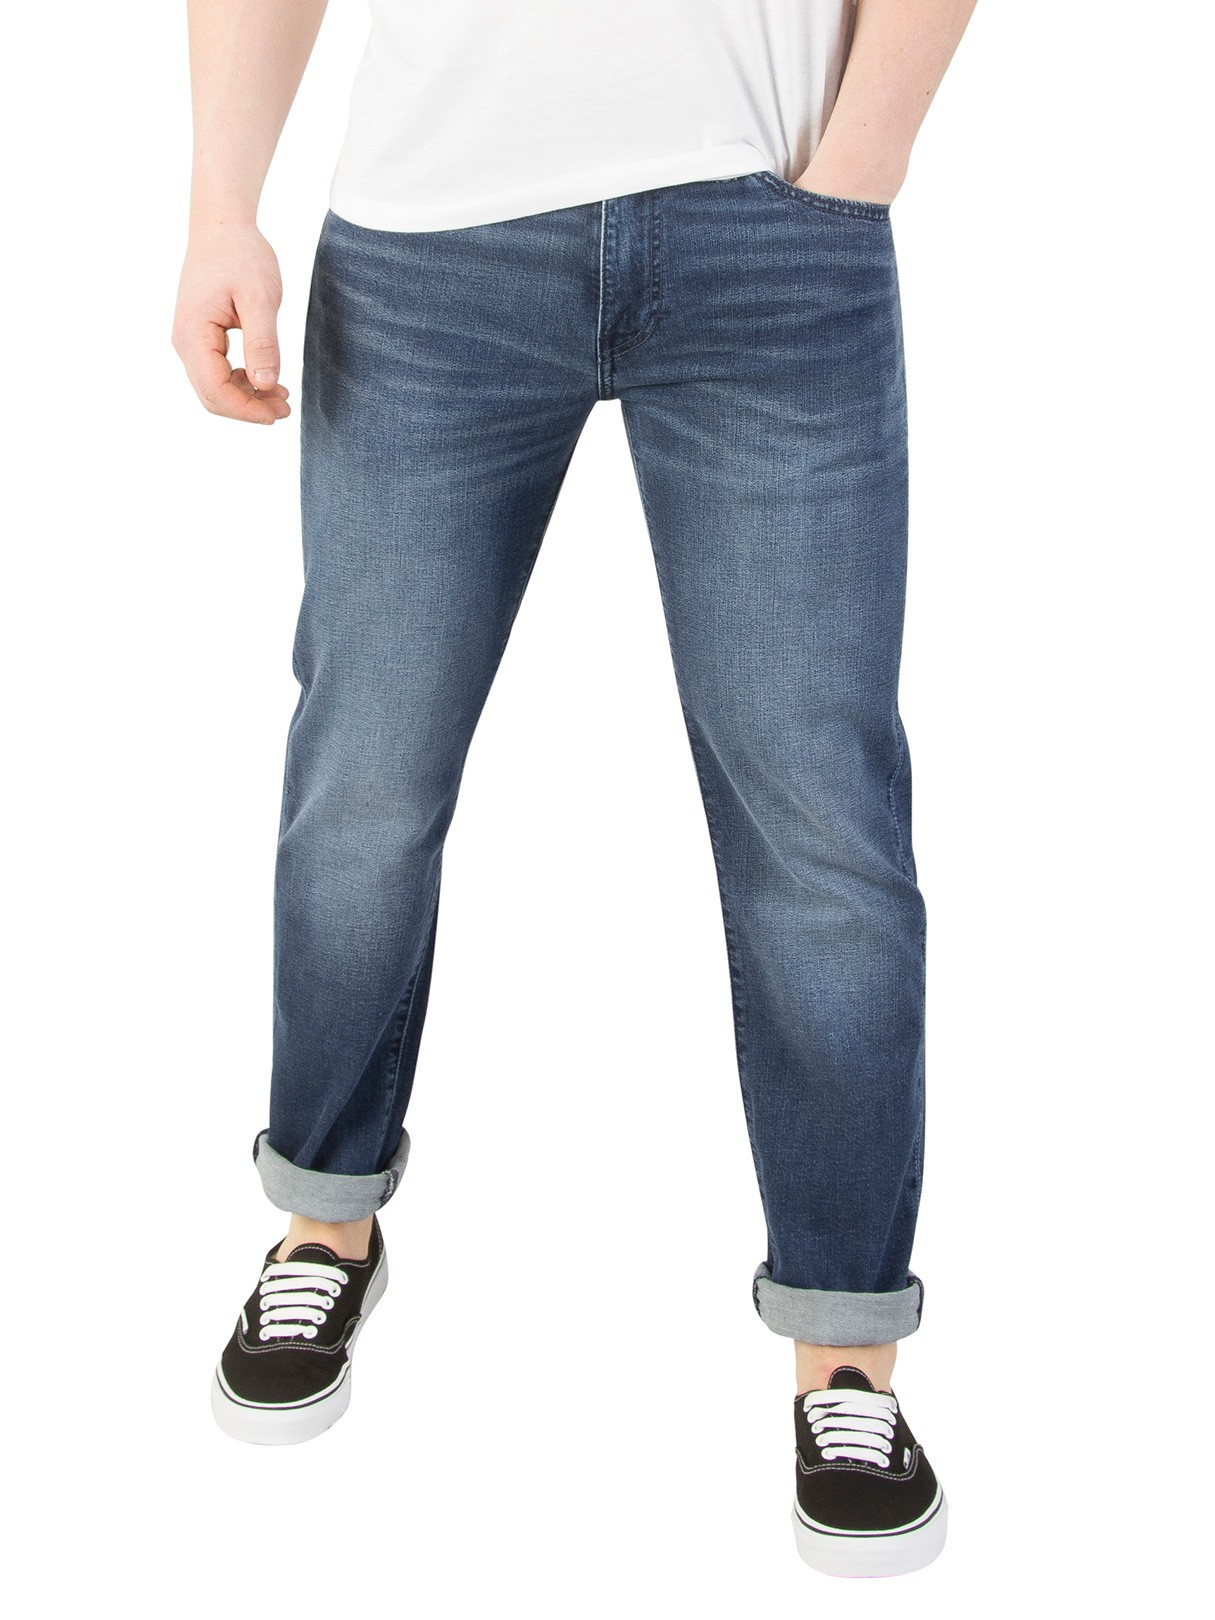 Stand-out.net Levi's If I Were Queen 511 Slim Fit Jeans